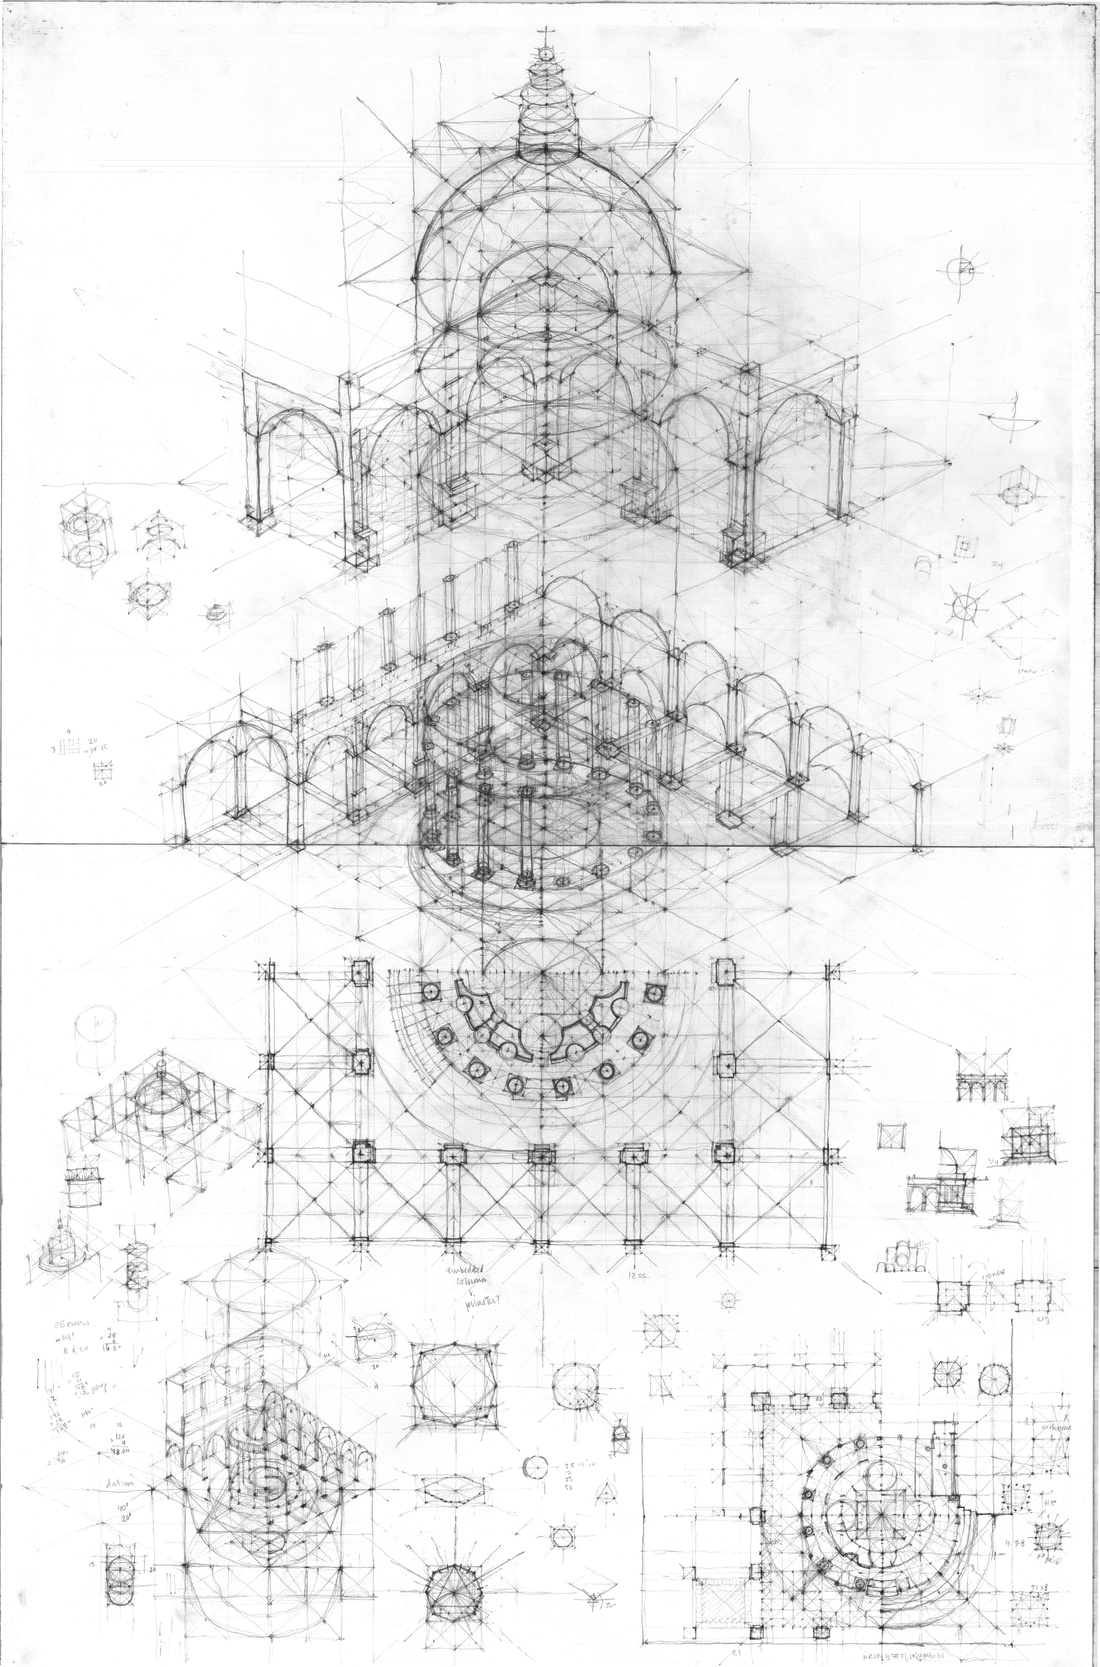 Synthetic drawing of works by Bramante